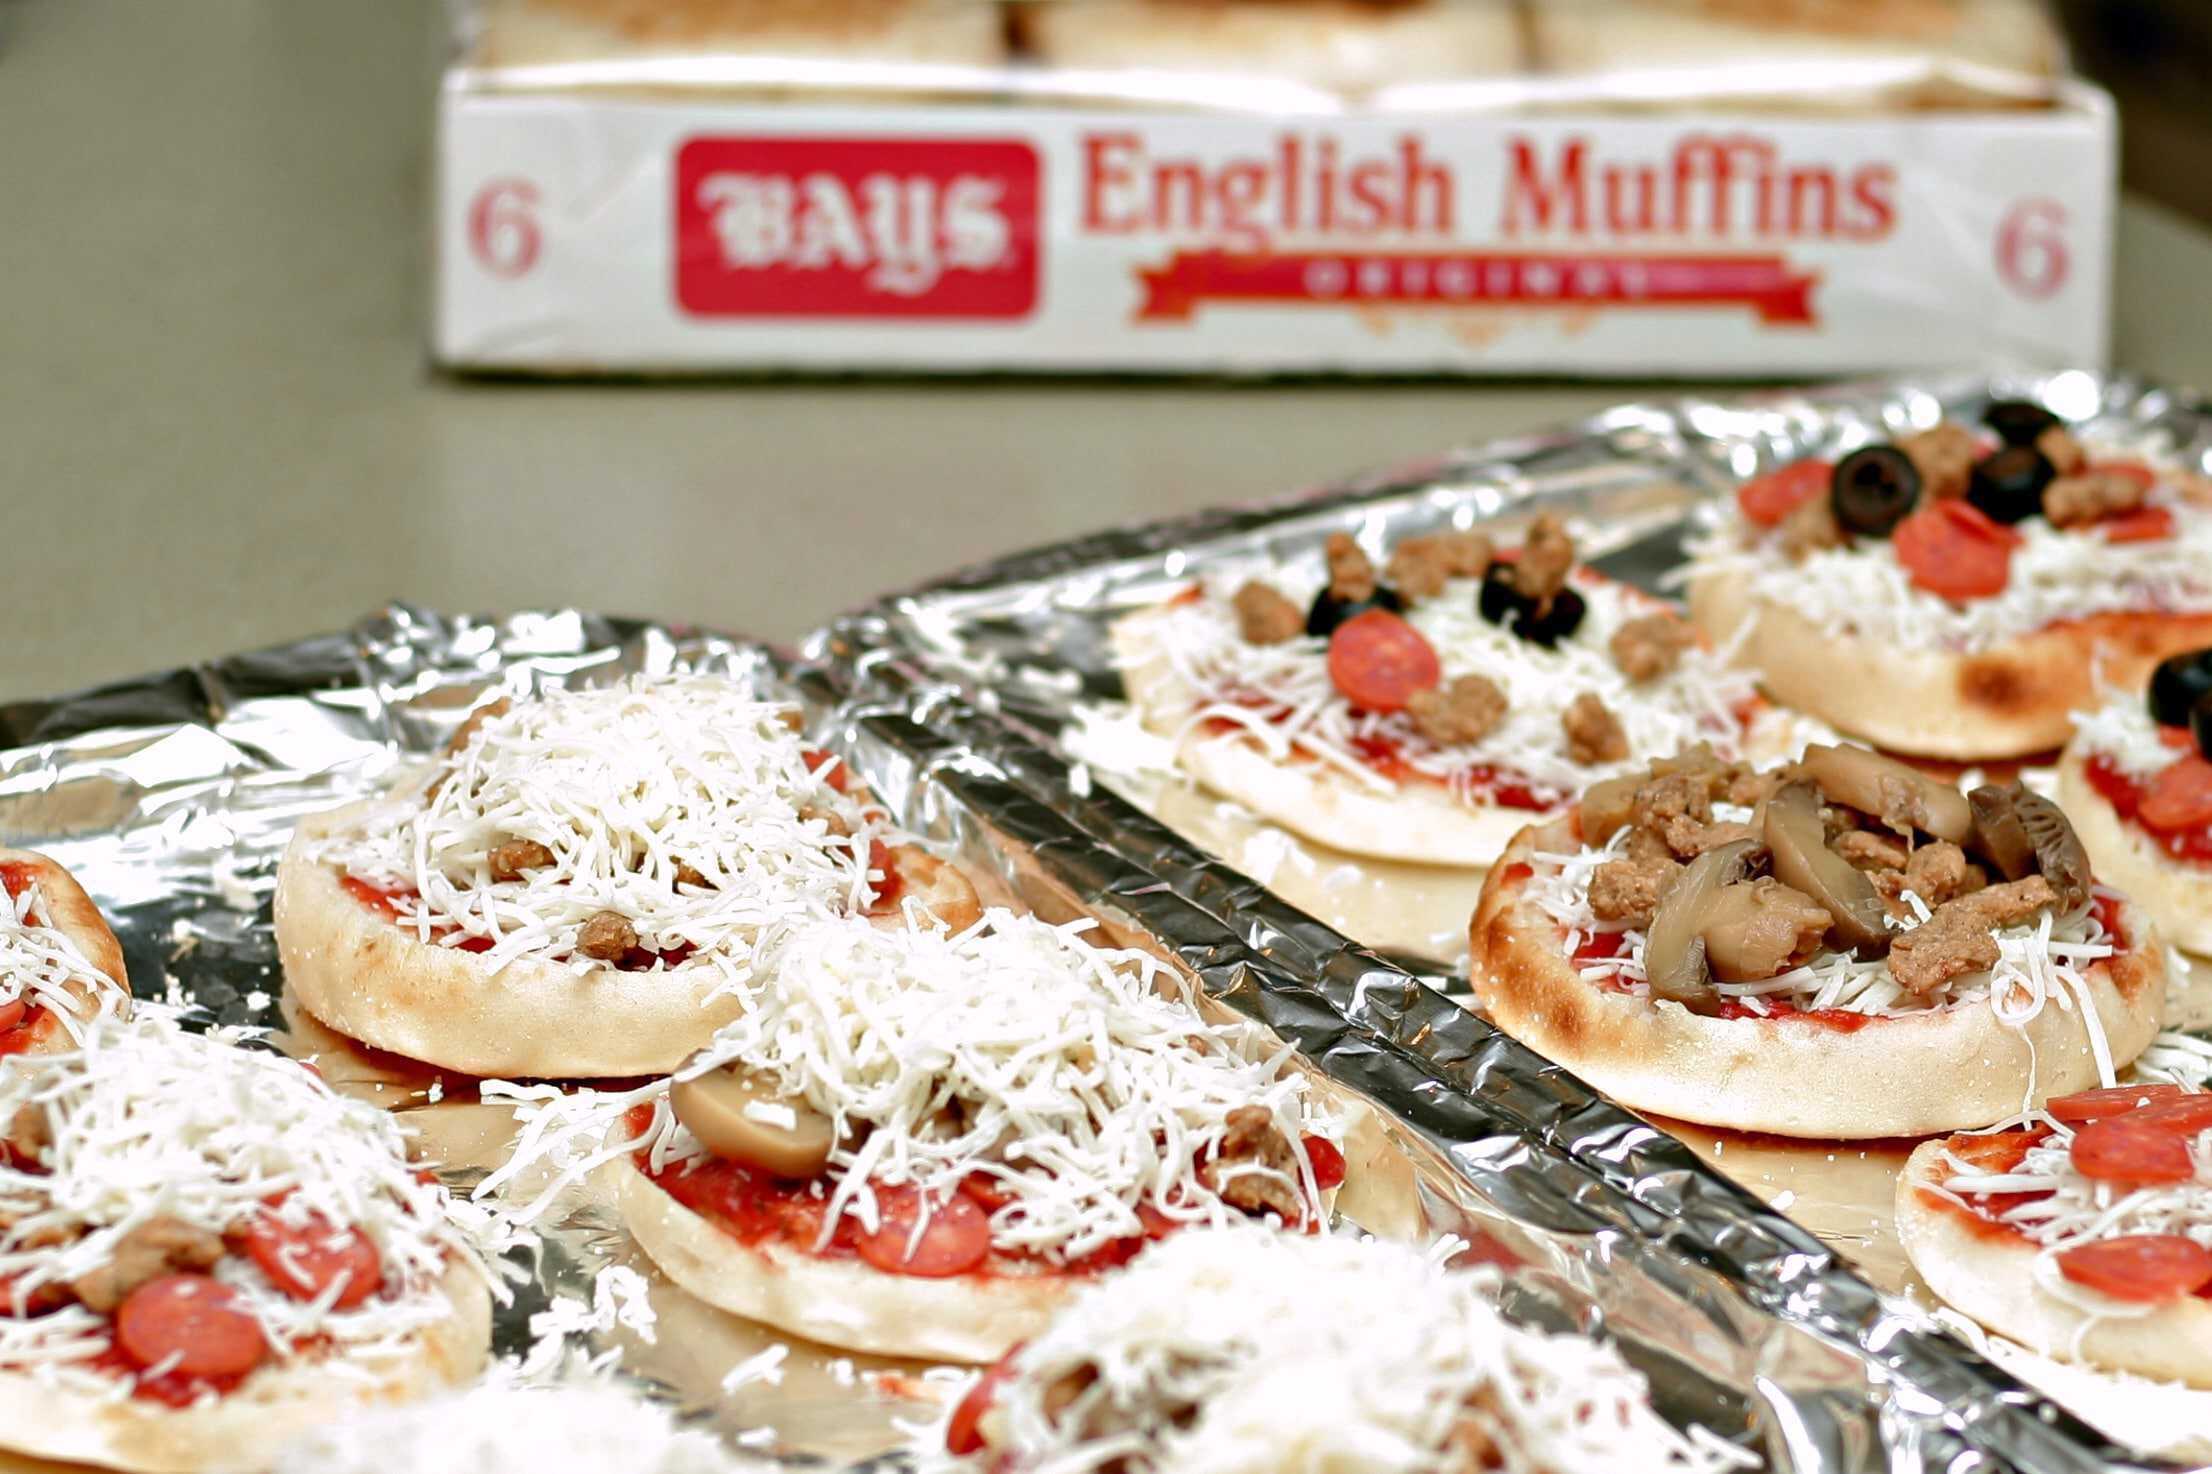 How to create an english muffin pizza, easy dinner ideas for kids, how to get kids to help in the kitchen, english muffin pizza bar, easy pizza party ideas